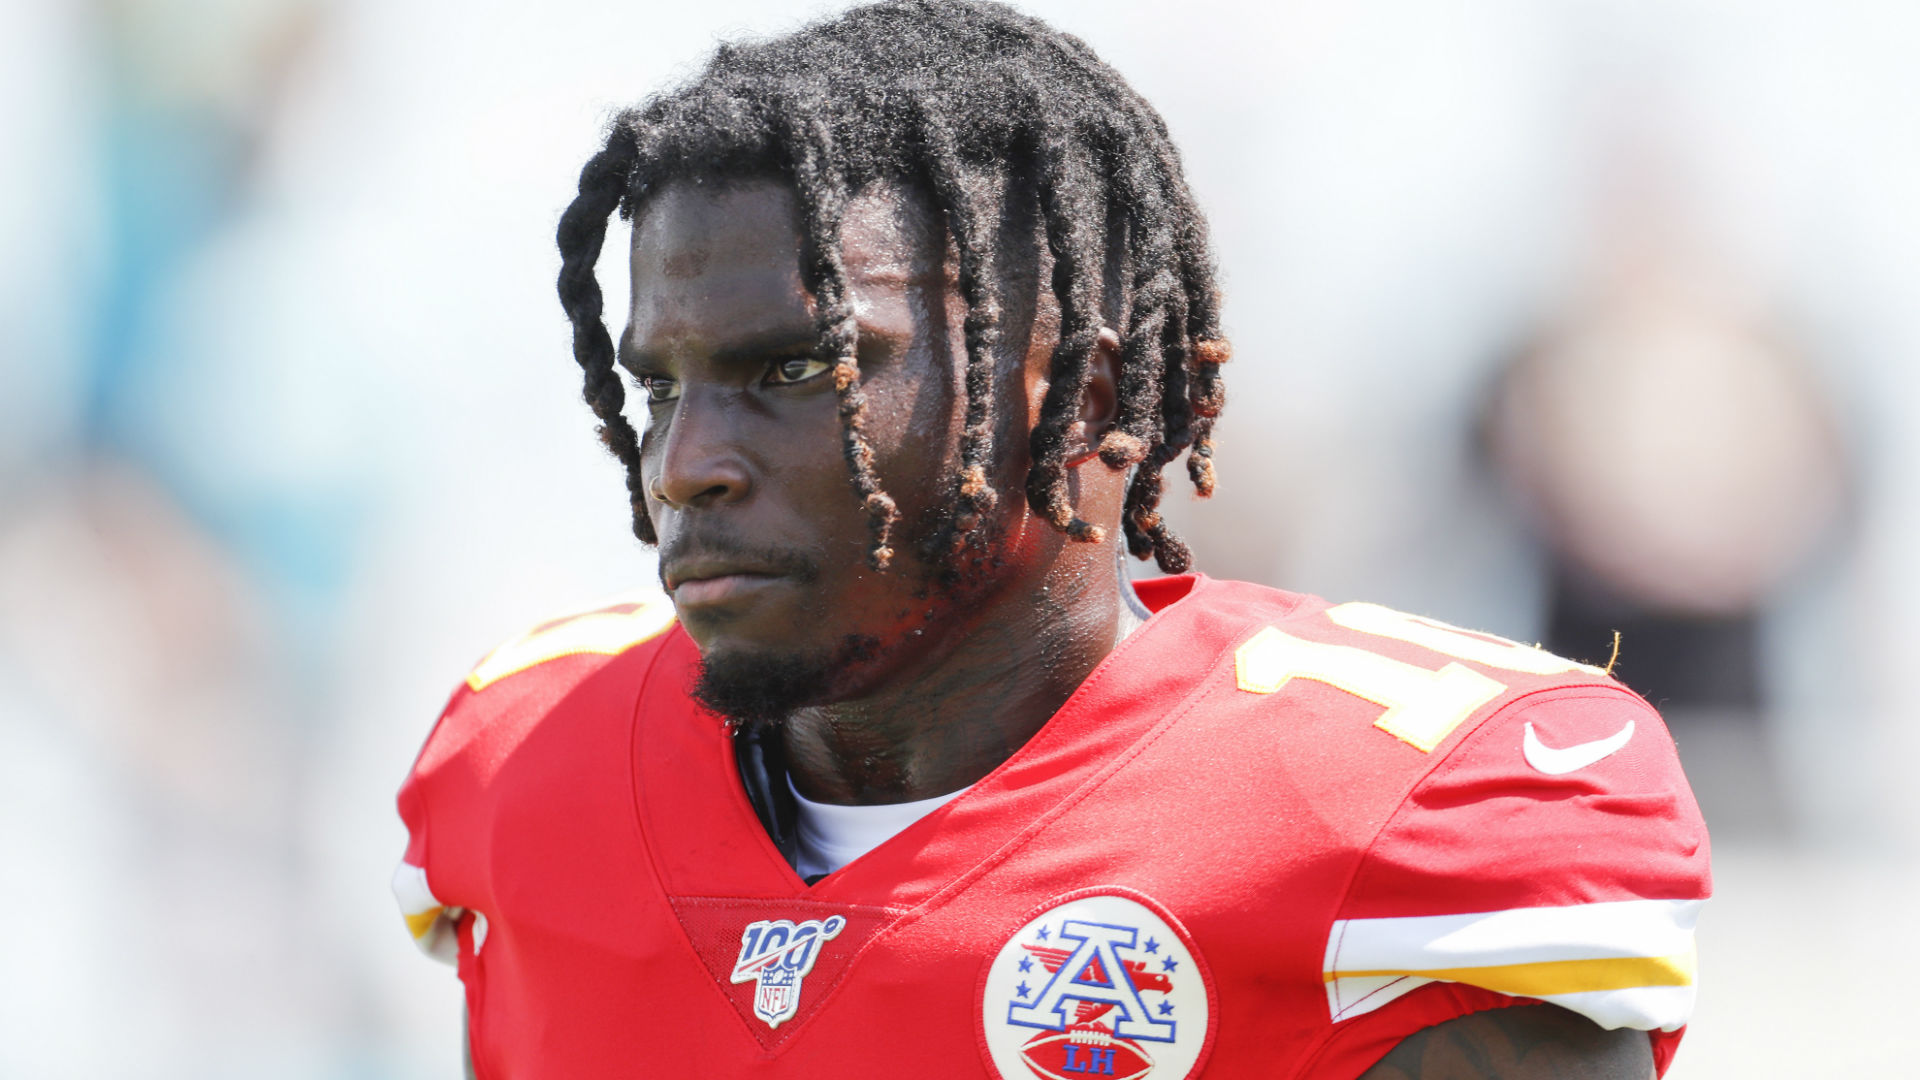 The Chiefs extended Tyreek Hill's contract with troubling urgency